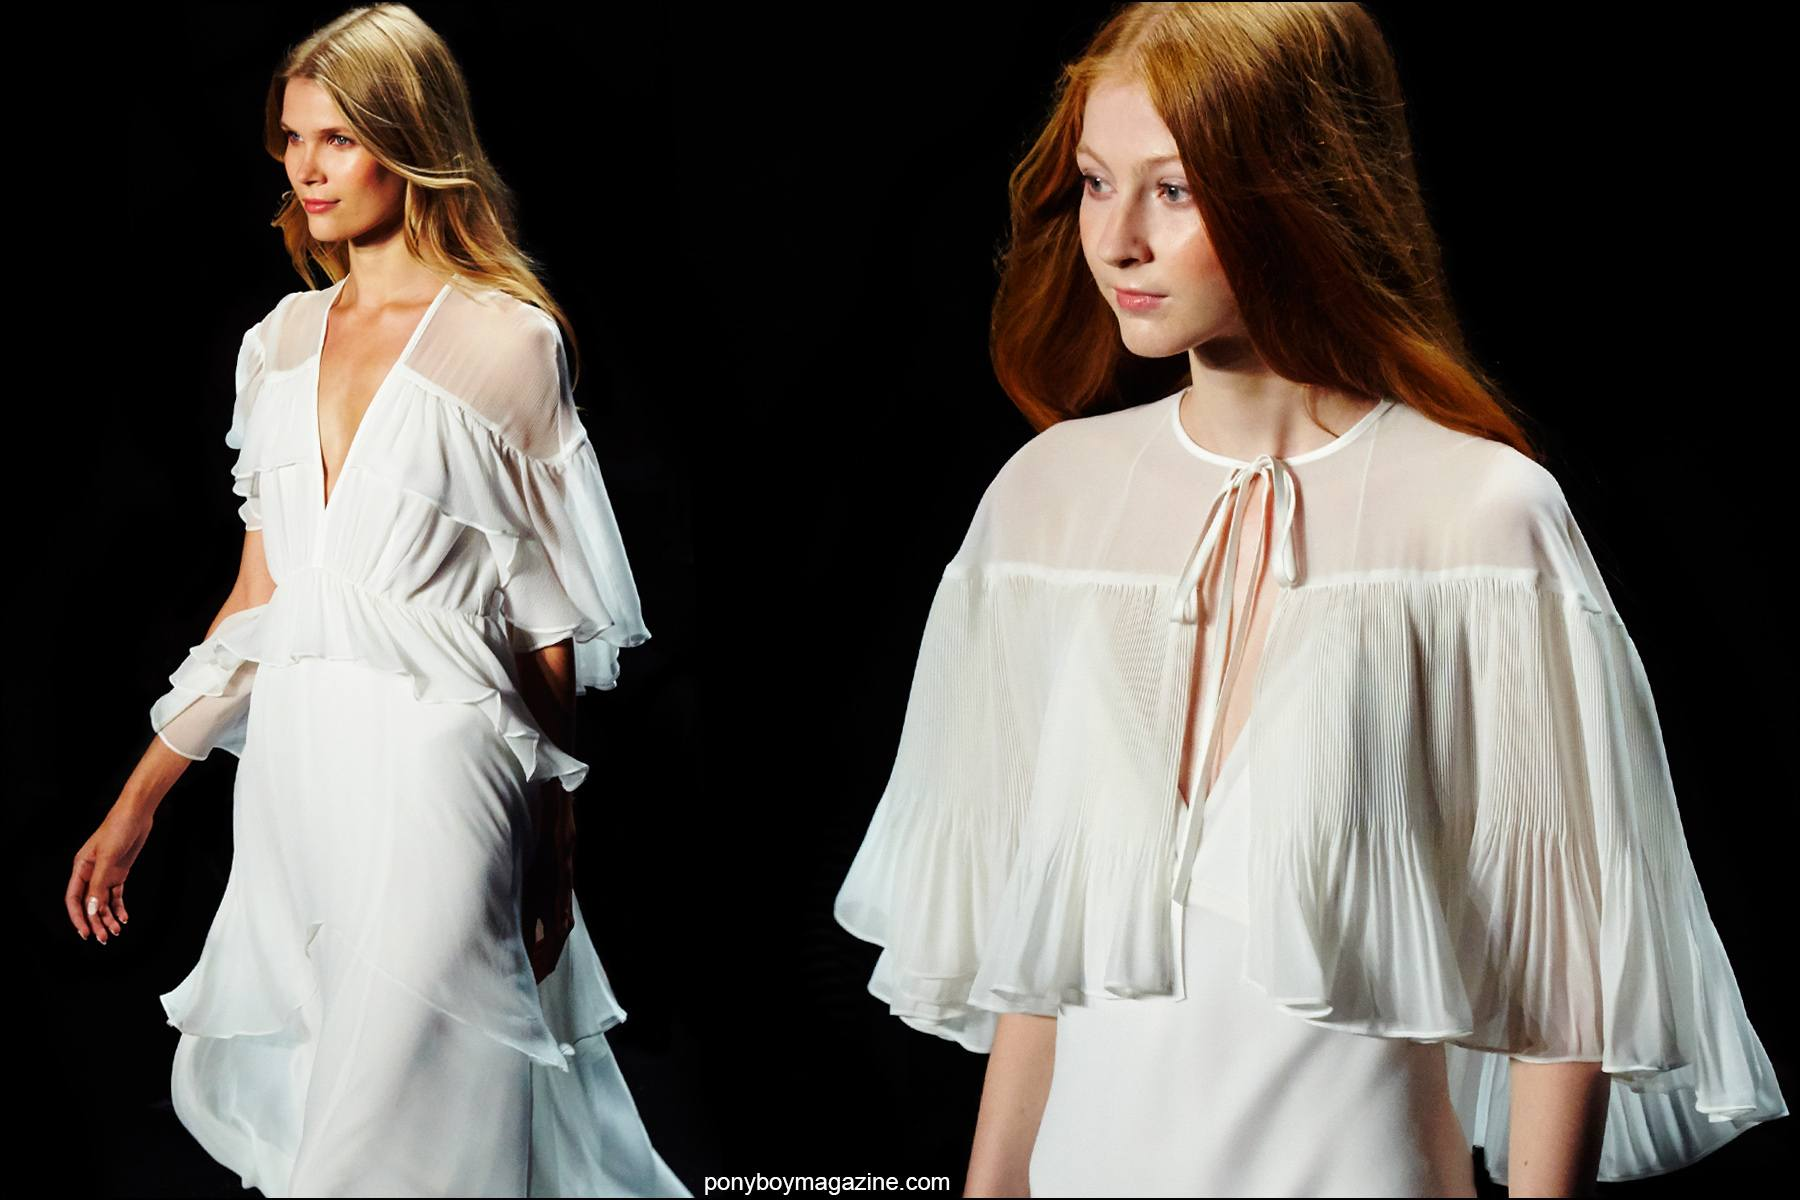 White chiffon dresses on the Erin Fetherston Spring/Summer 2016 runway. Photographs by Alexander Thompson for Ponyboy magazine NY.